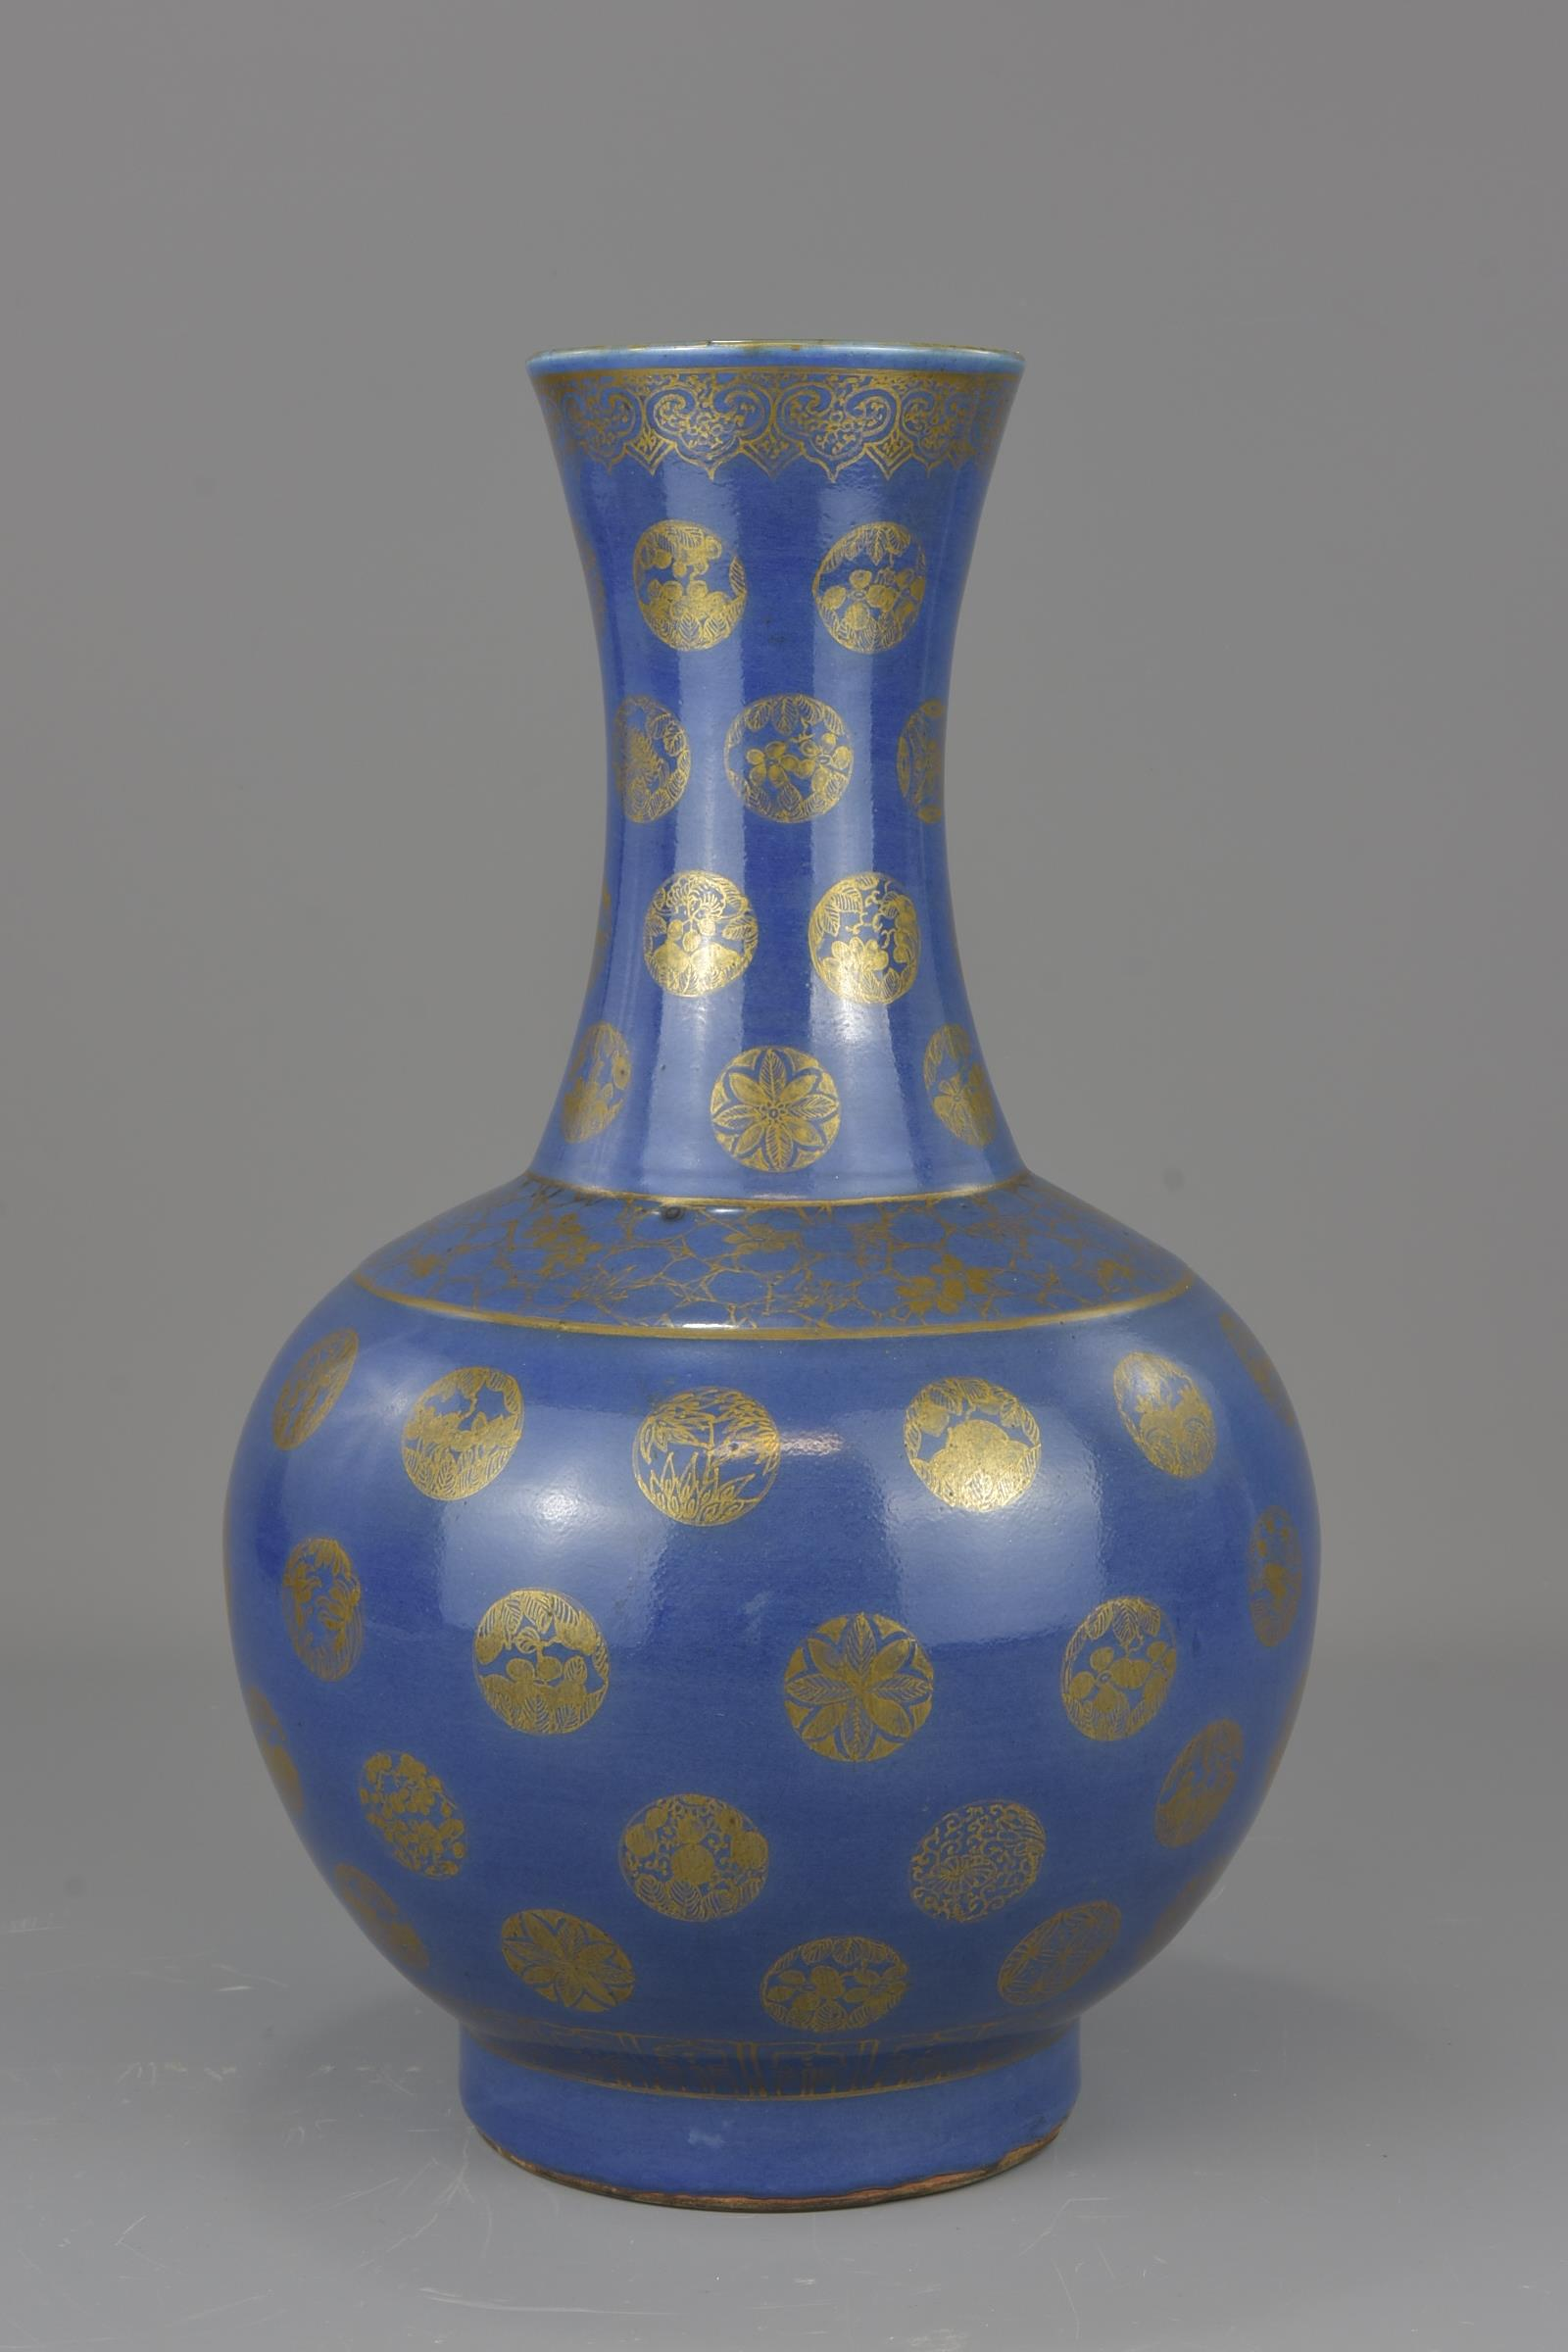 Lot 27 - A Chinese 19th century blue glazed porcelain bottle vase mark and period of GuangXu. 38cm tall